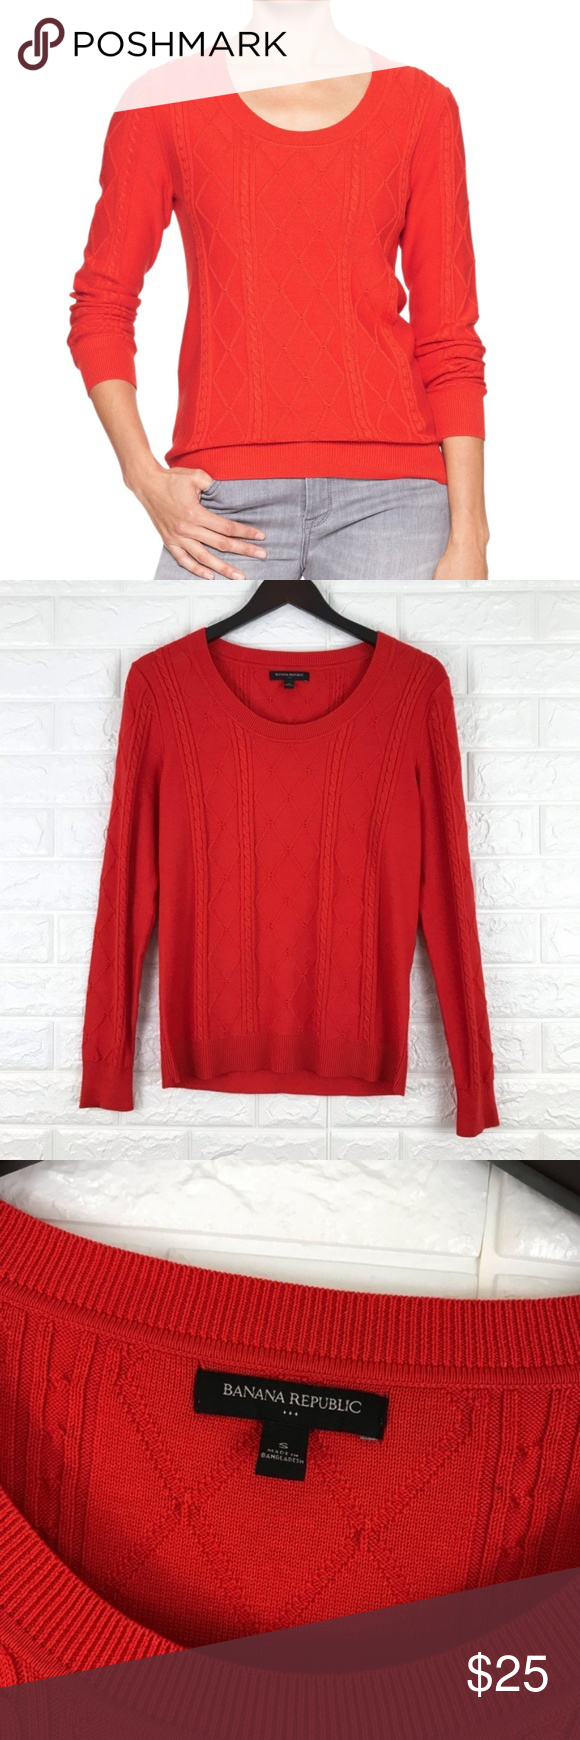 Banana Republic Factory Red Crewneck Sweater Small Long